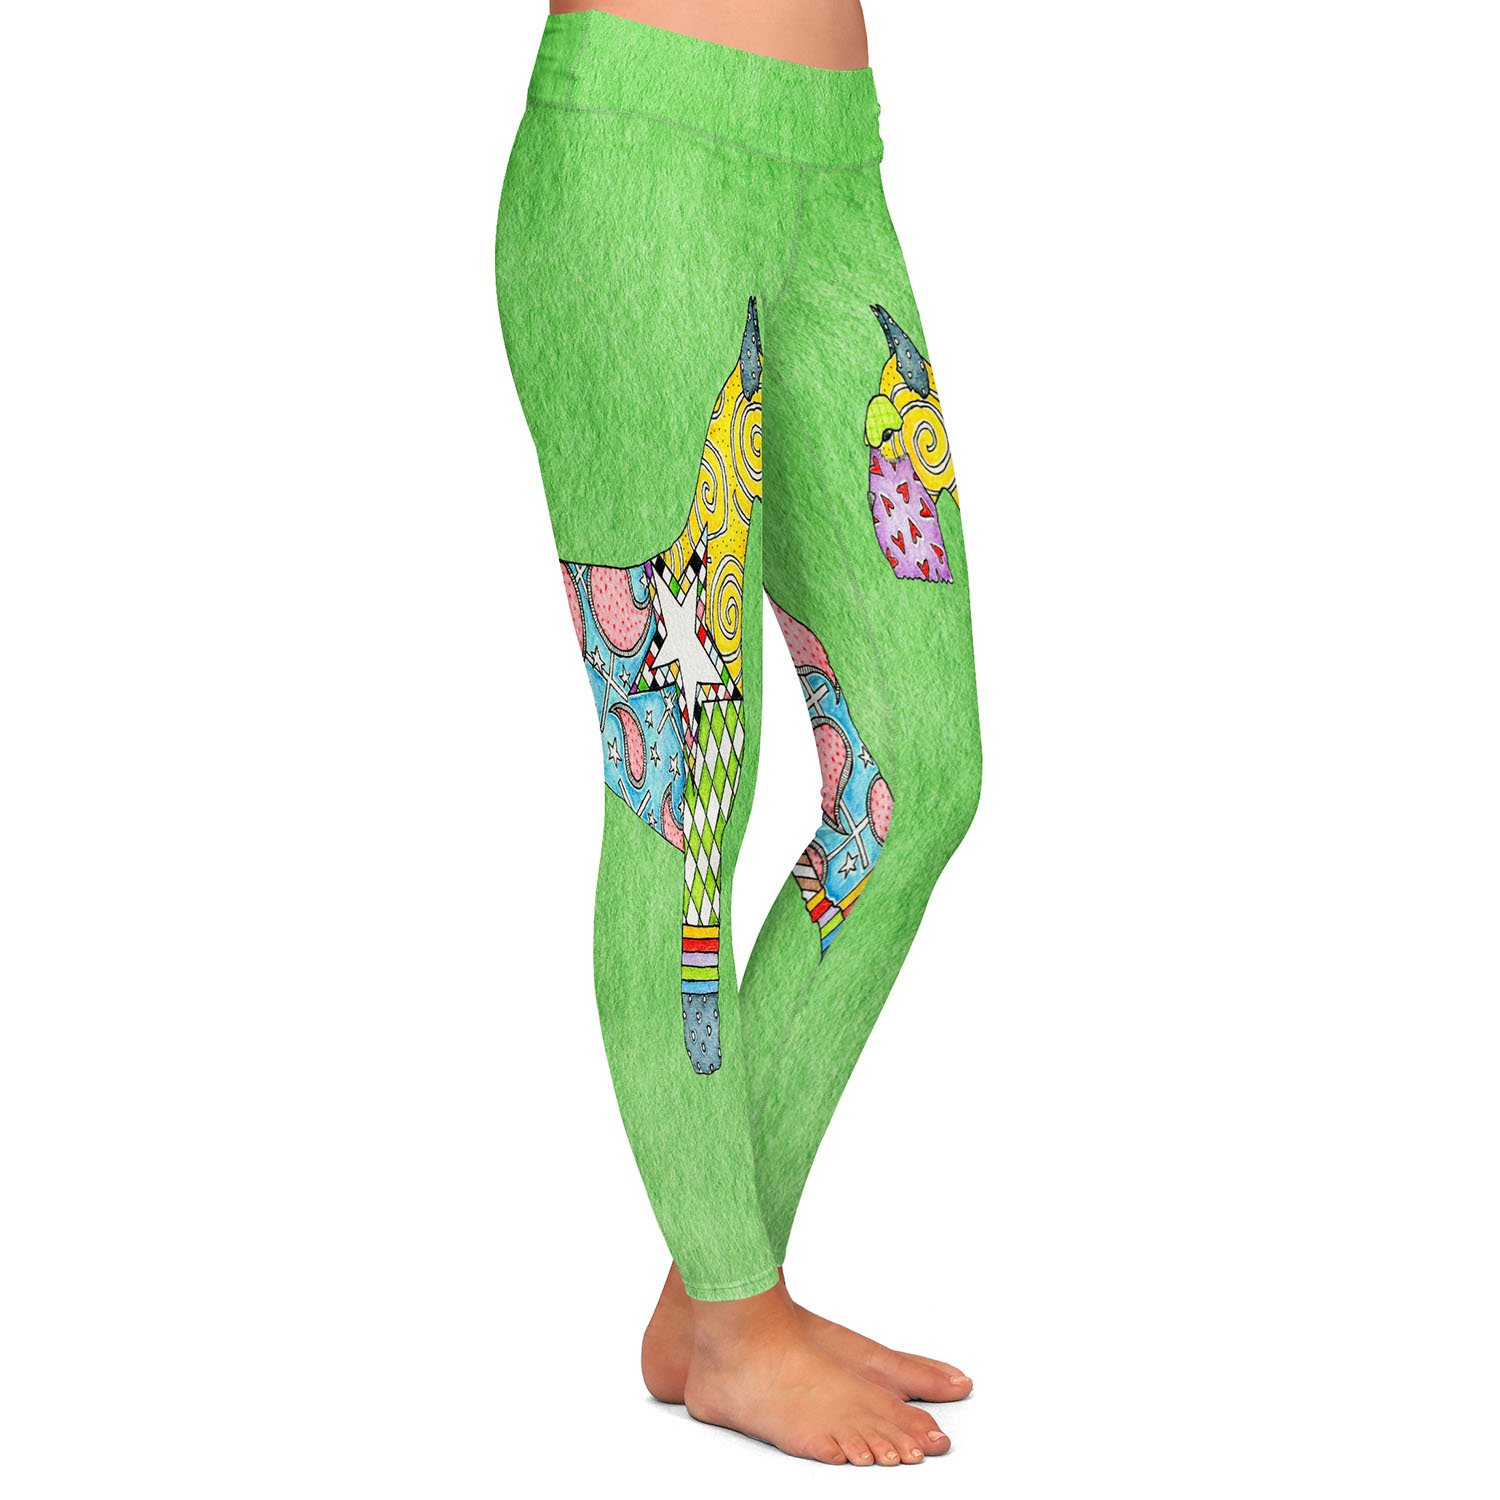 Athletic Yoga Leggings from DiaNoche Designs by Marley Ungaro Giant Schnauzer Green